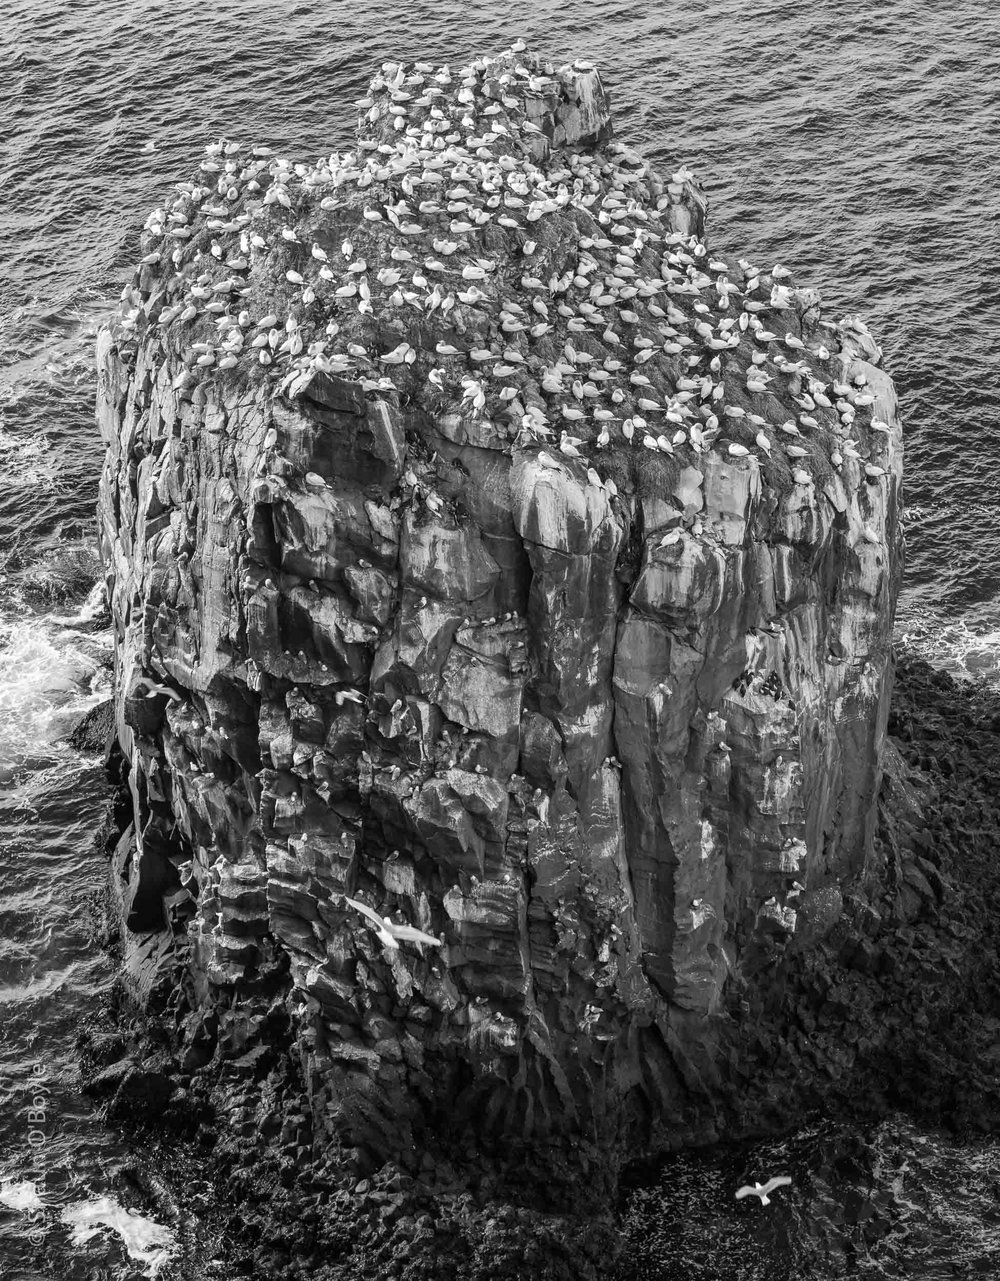 Sea Stack with Northern Gannet Colony, Langanes Peninsula